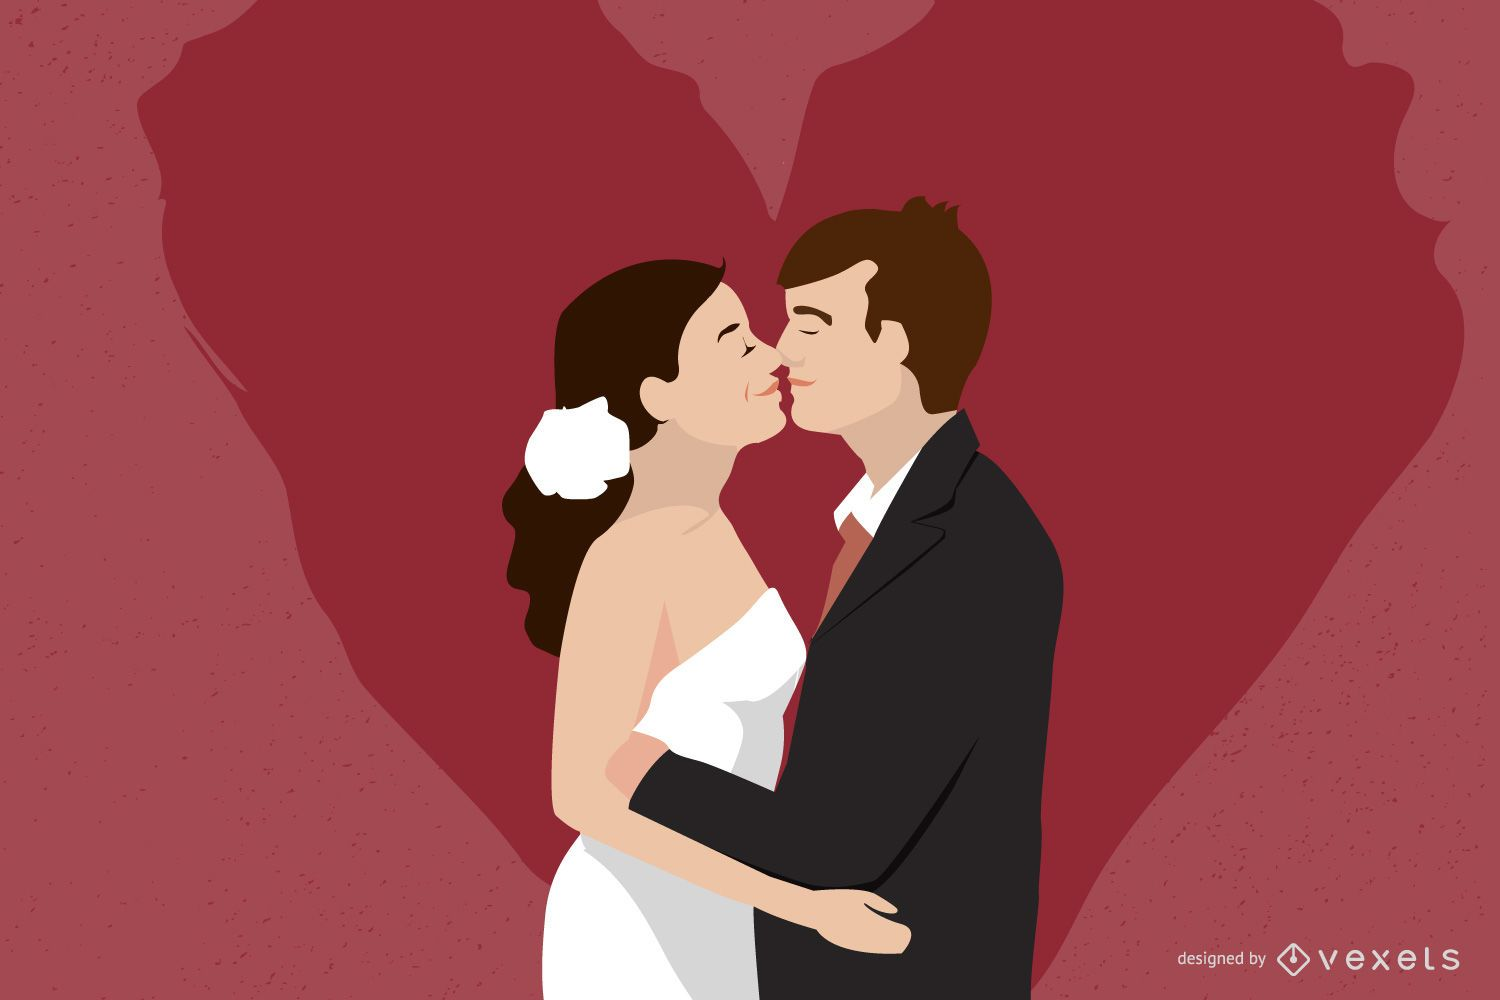 Kissing Wedding Couple in Love